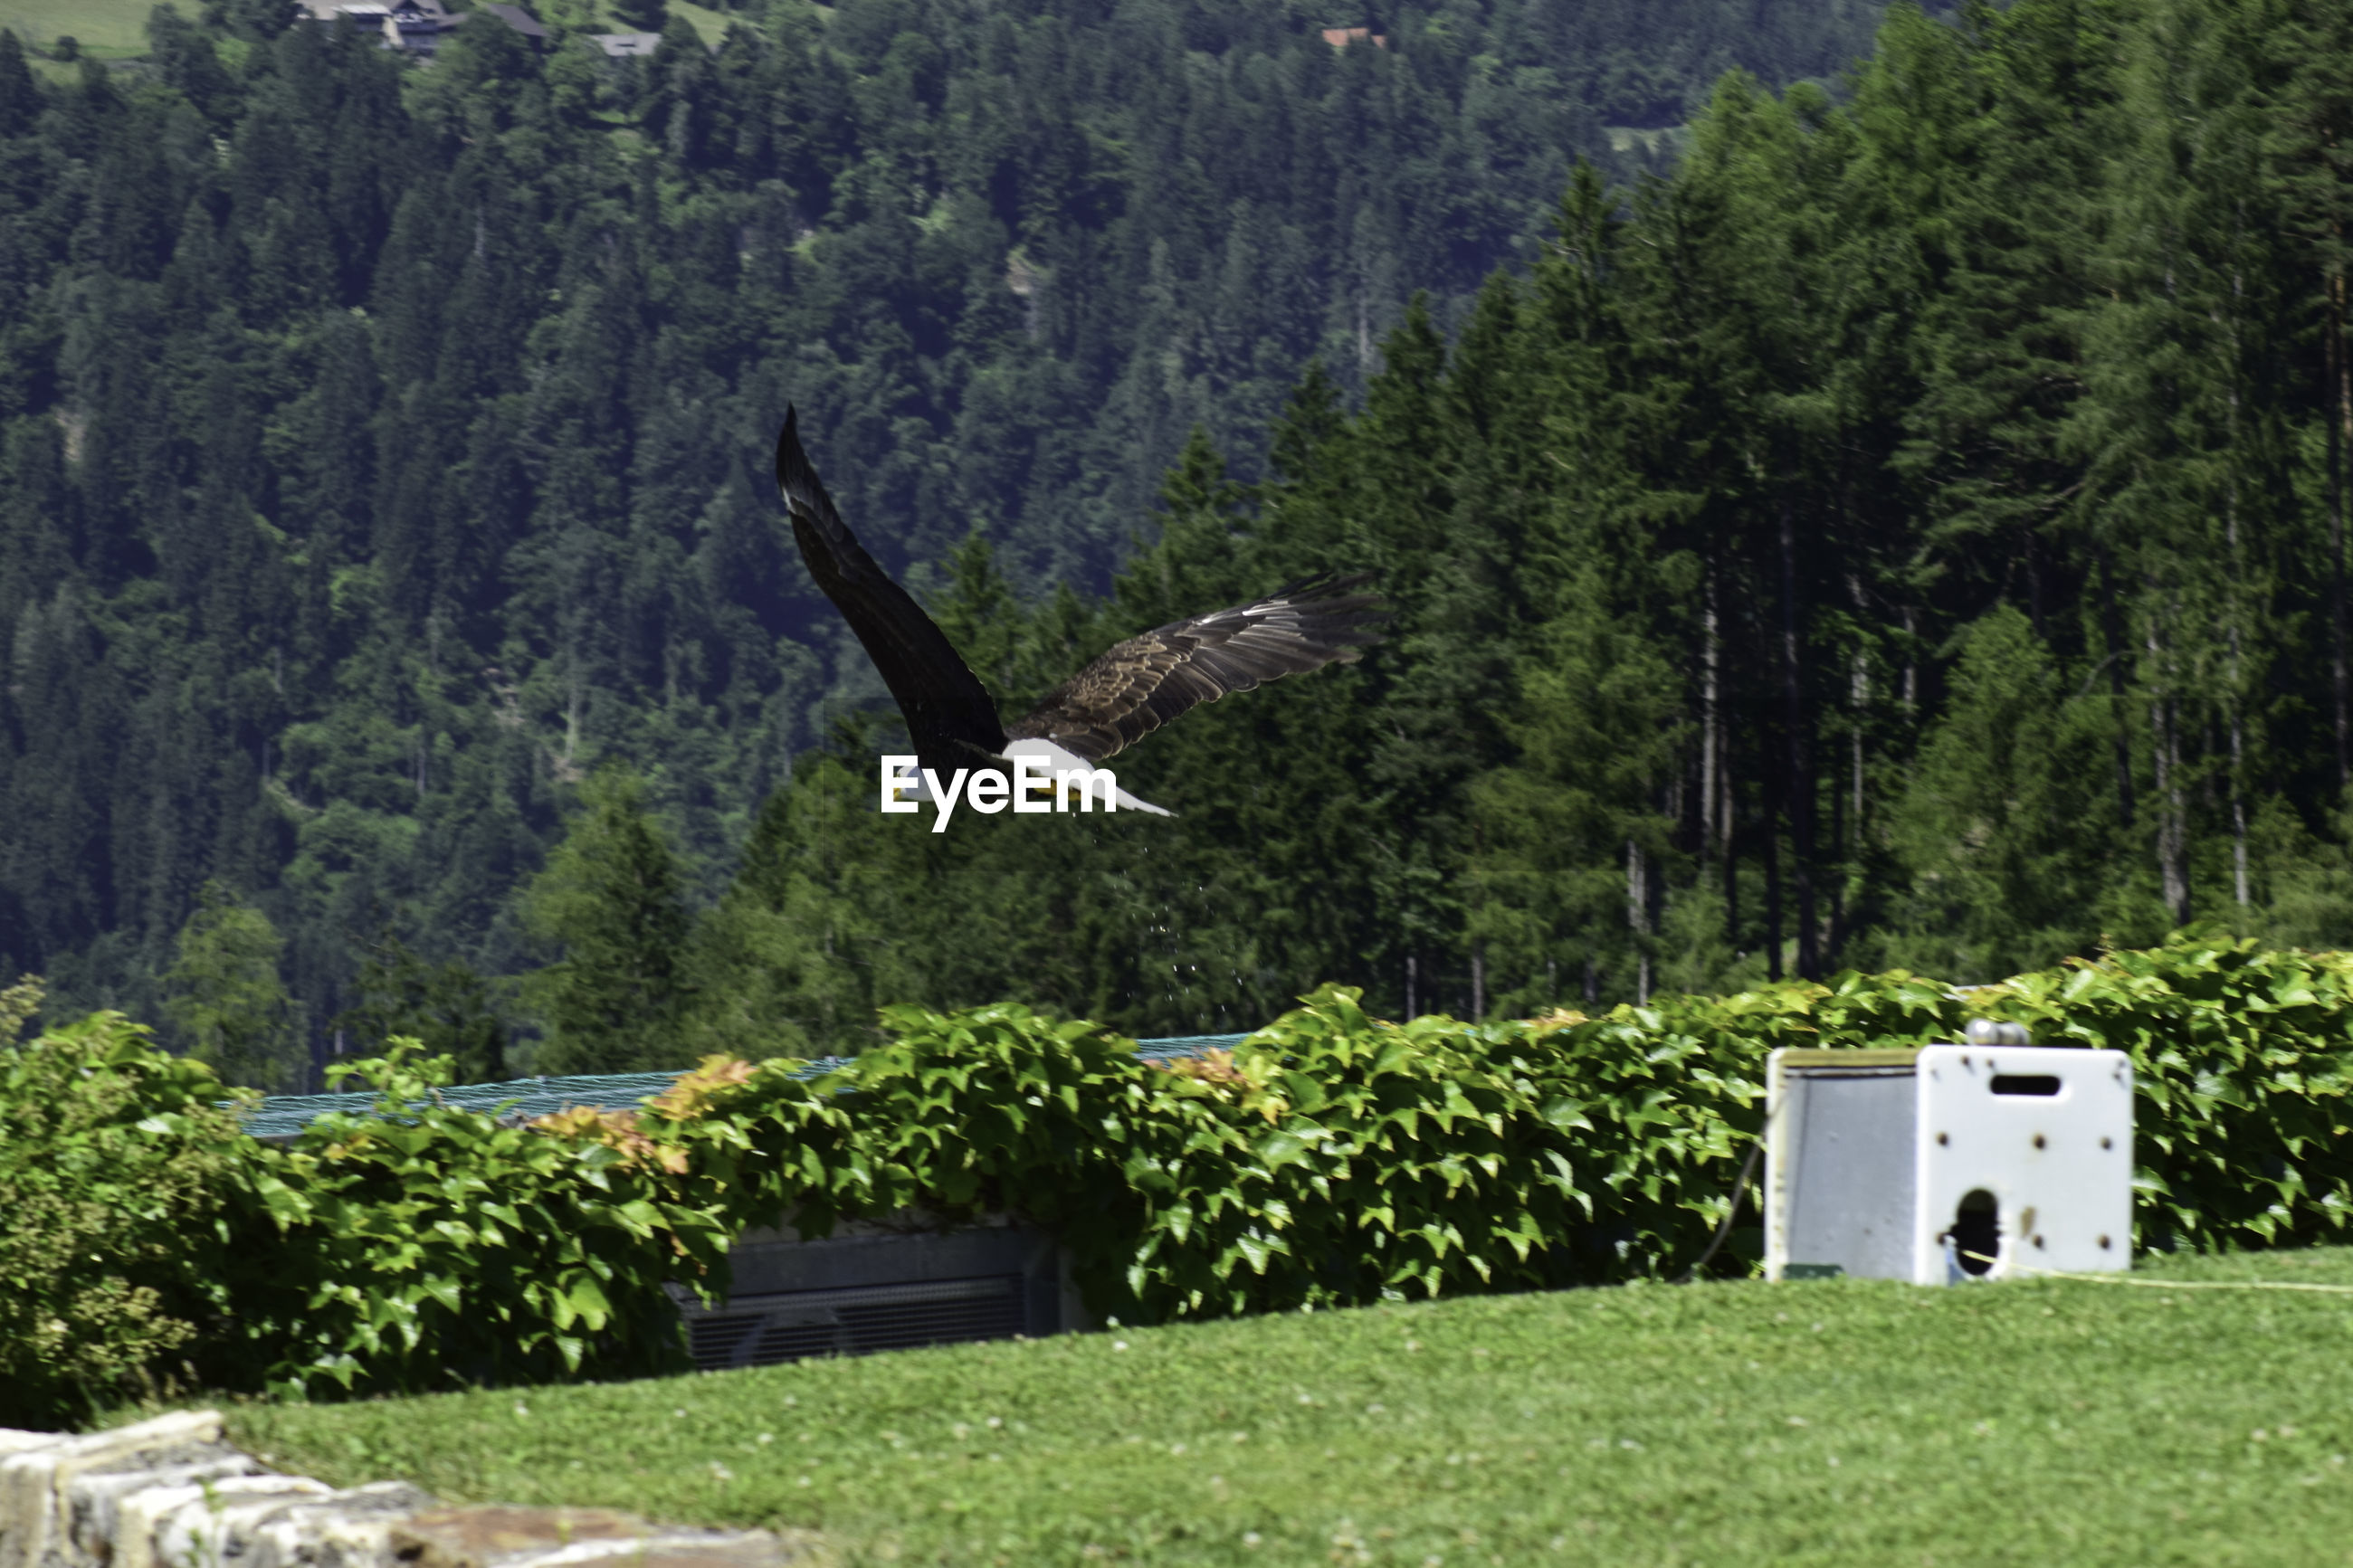 VIEW OF BIRD FLYING OVER TREES